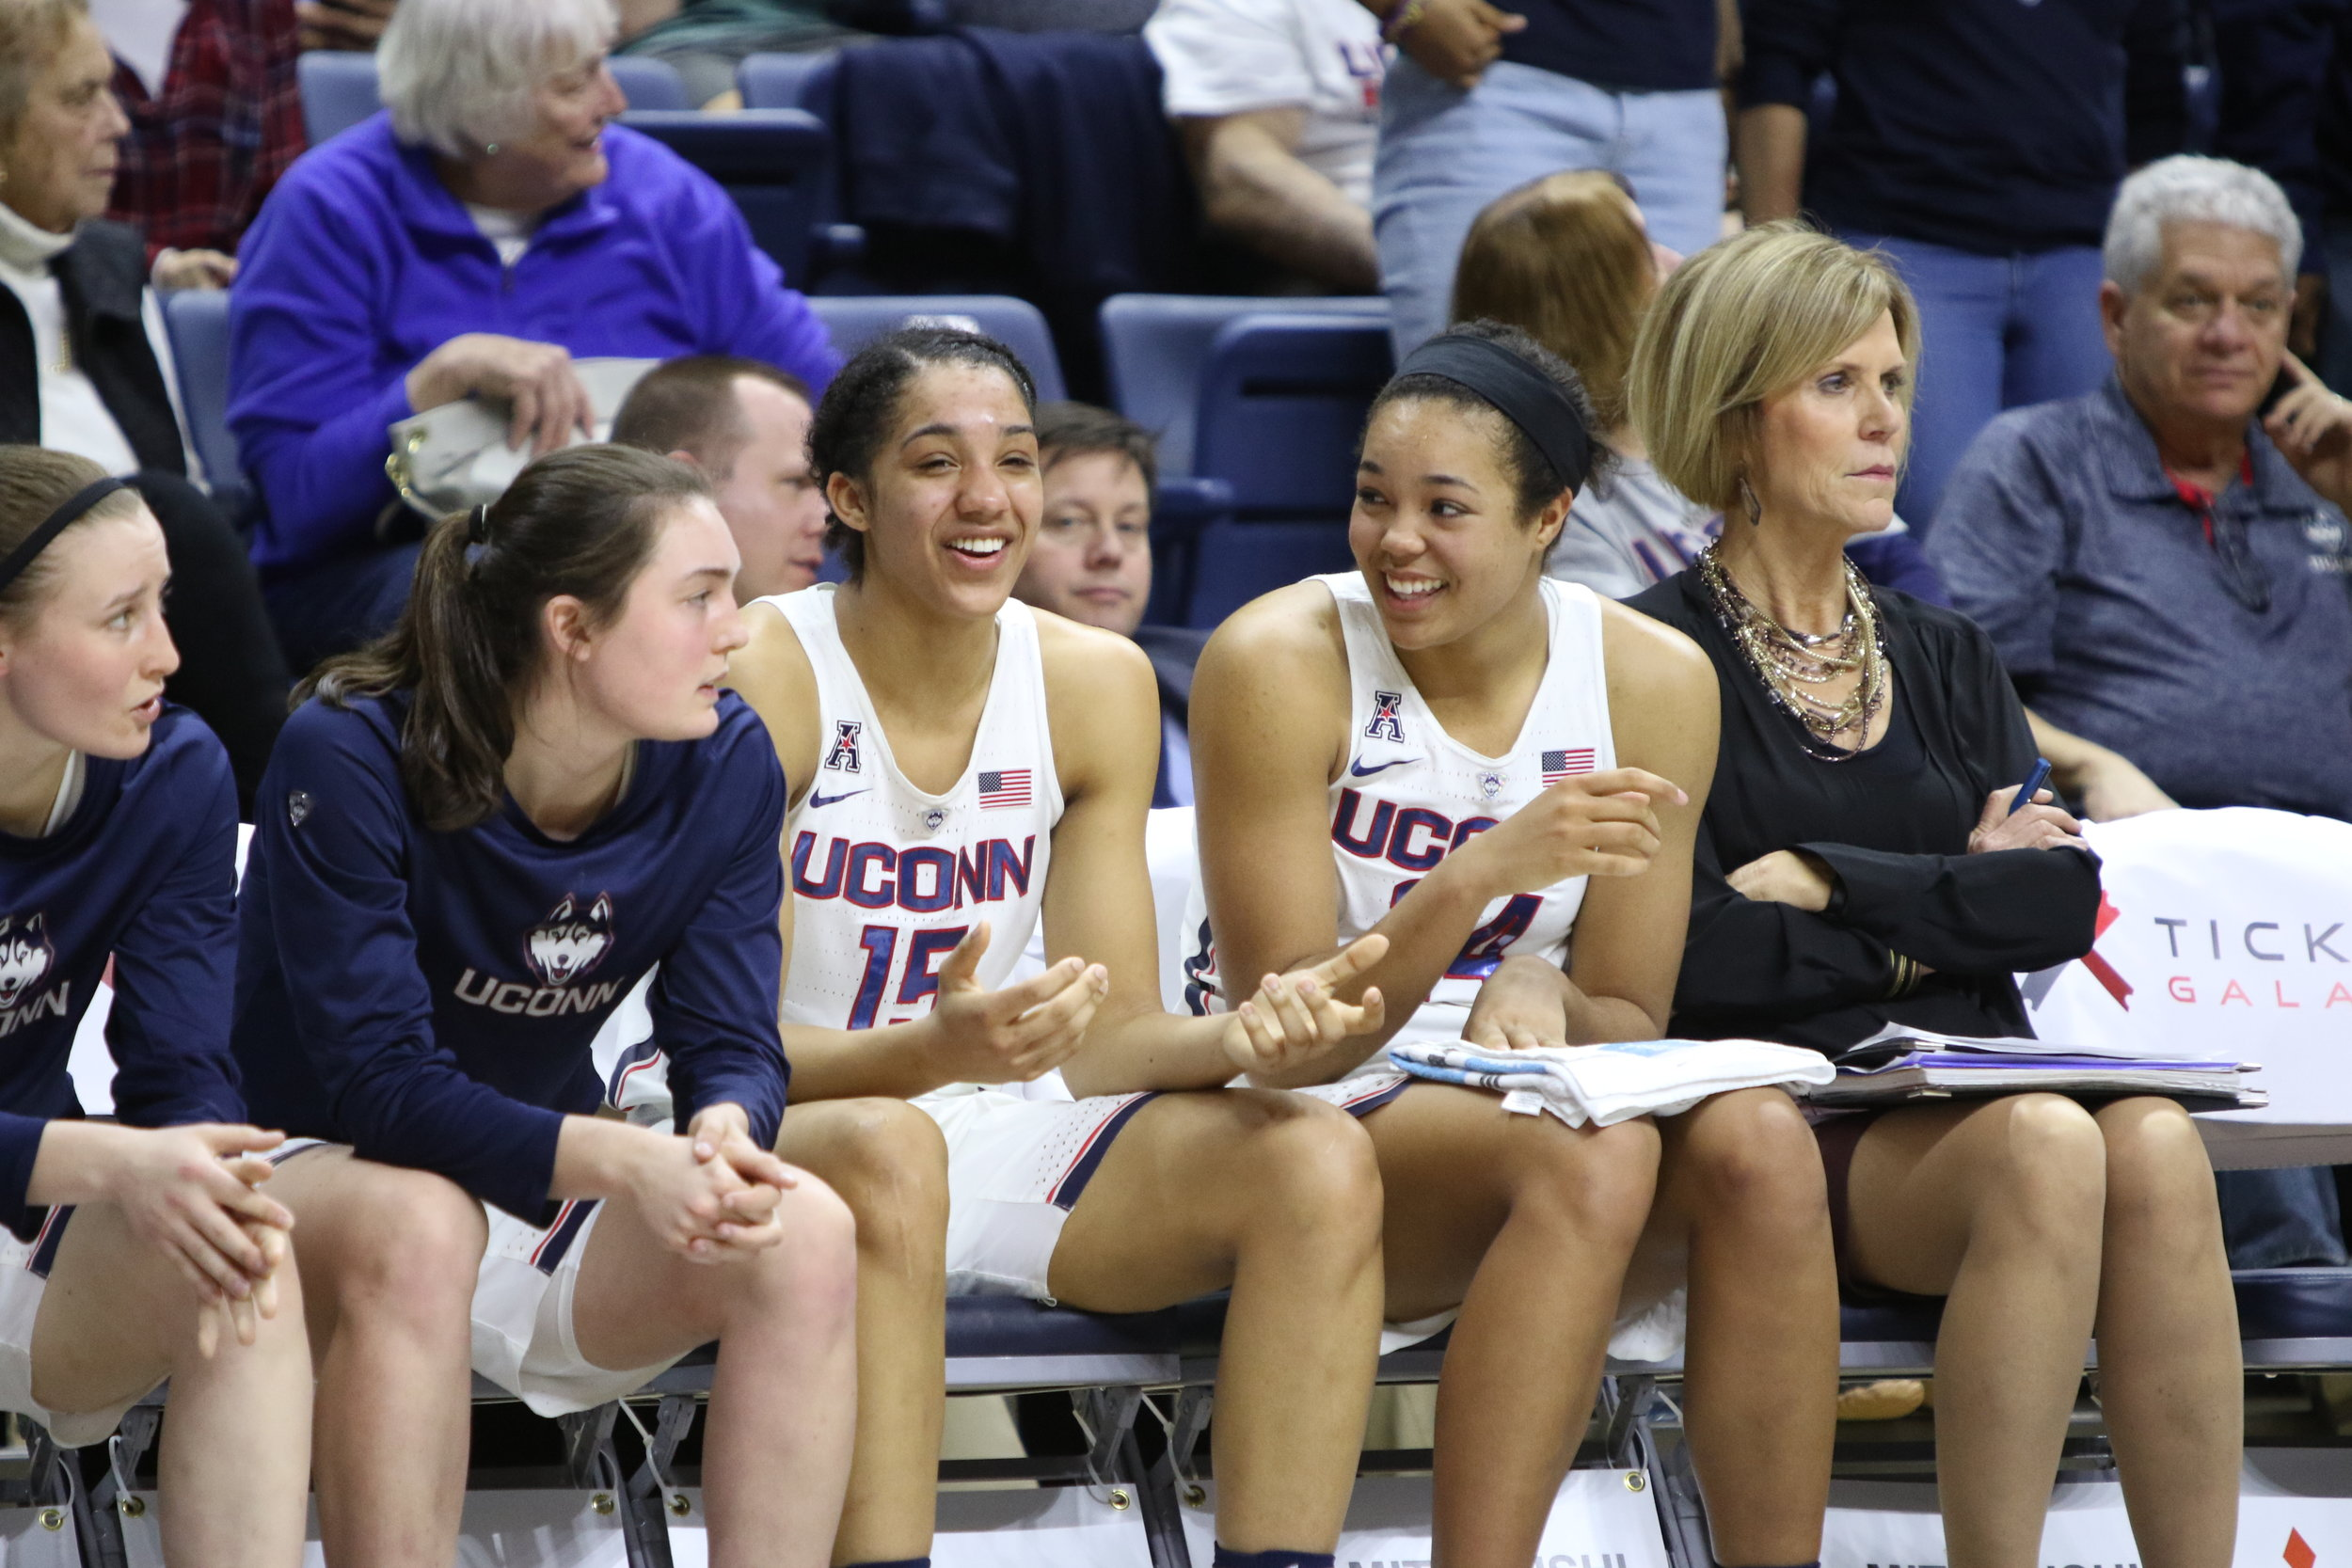 From left: Players Tierney Lawlor, Molly Bent, Gabby Williams and Napheesa Collier sit on the bench while coach Chris Dailey looks on in UConn's 91-48 win over Memphis on Feb. 25, 2017 at Gampel Pavilion (Jackson Haigis/The Daily Campus).